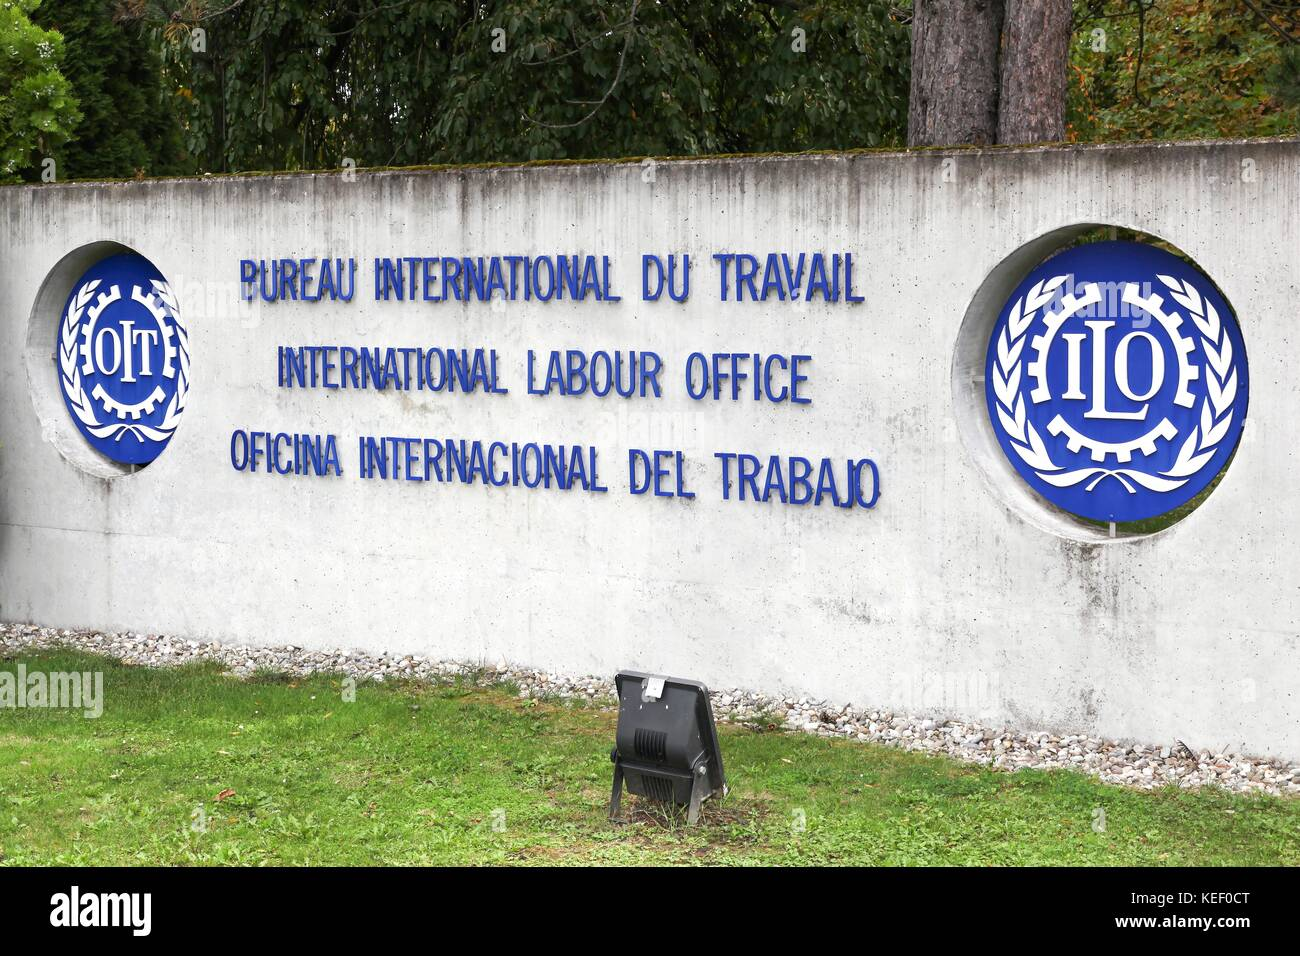 Geneva, Switzerland - October 1, 2017: International labour office logo on a wall. - Stock Image